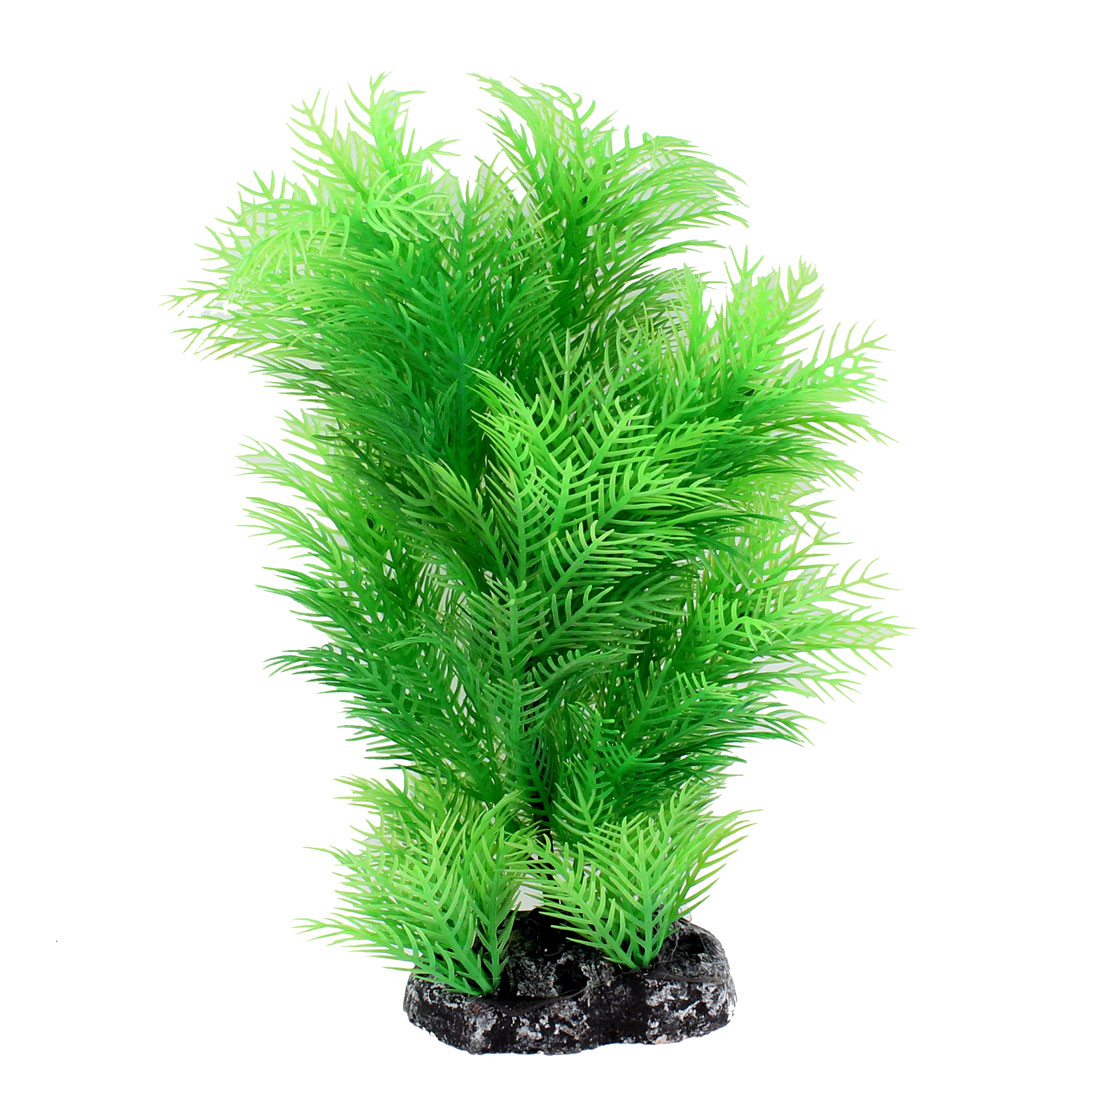 "Aquarium Plastic Underwater Grass Ornament Manmade Plant Decor Green 9"" Height"